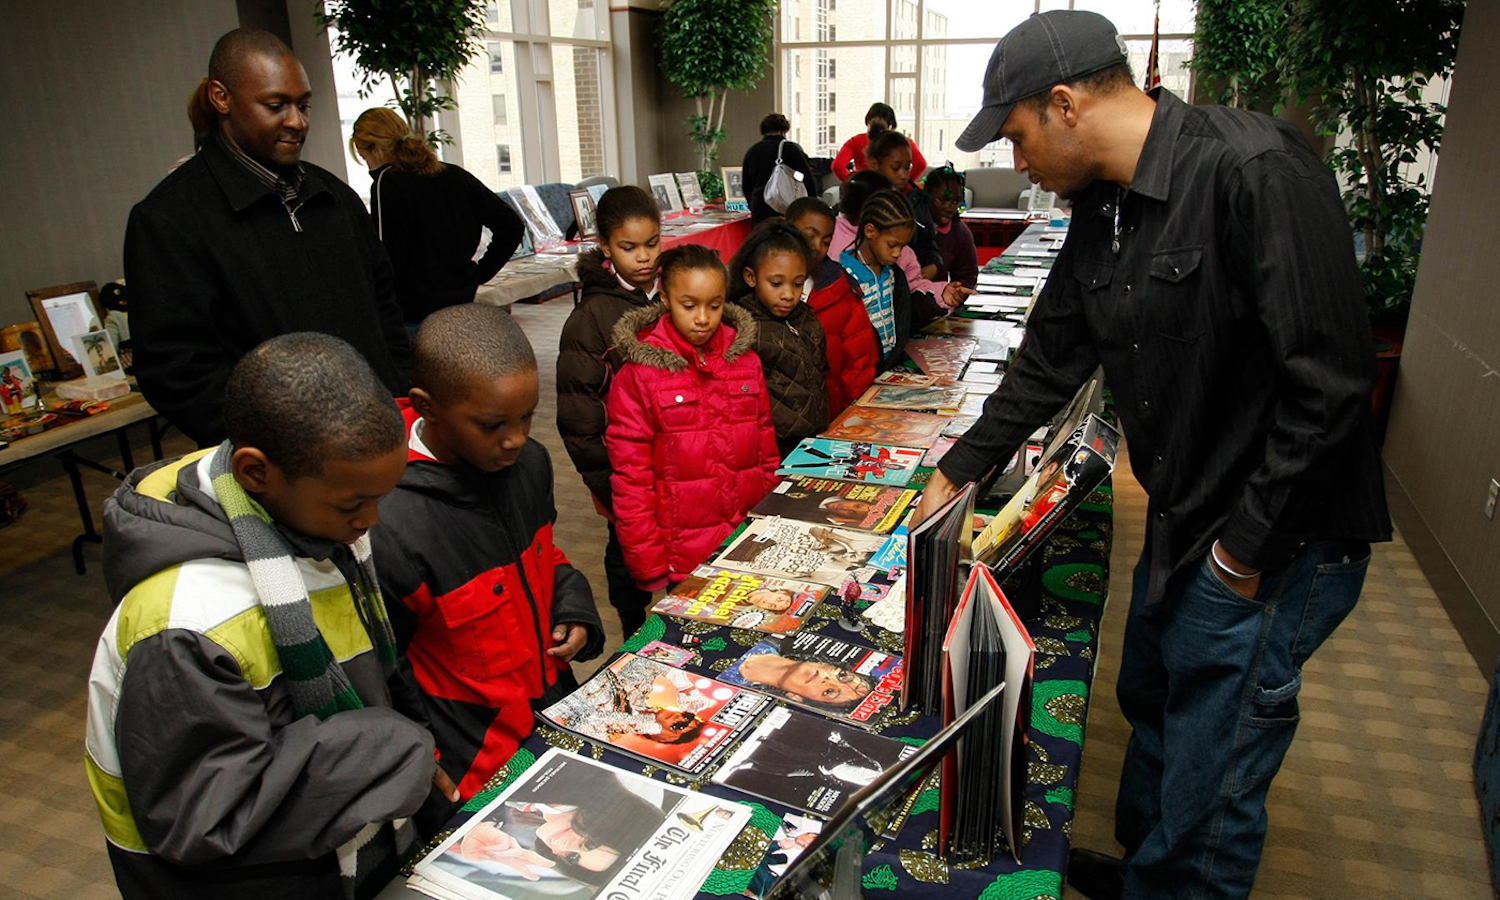 Black History 101 Mobile Museum, American Museum, African American Museums, African Museums, Cultural Museums, KINDR'D Magazine, KINDR'D